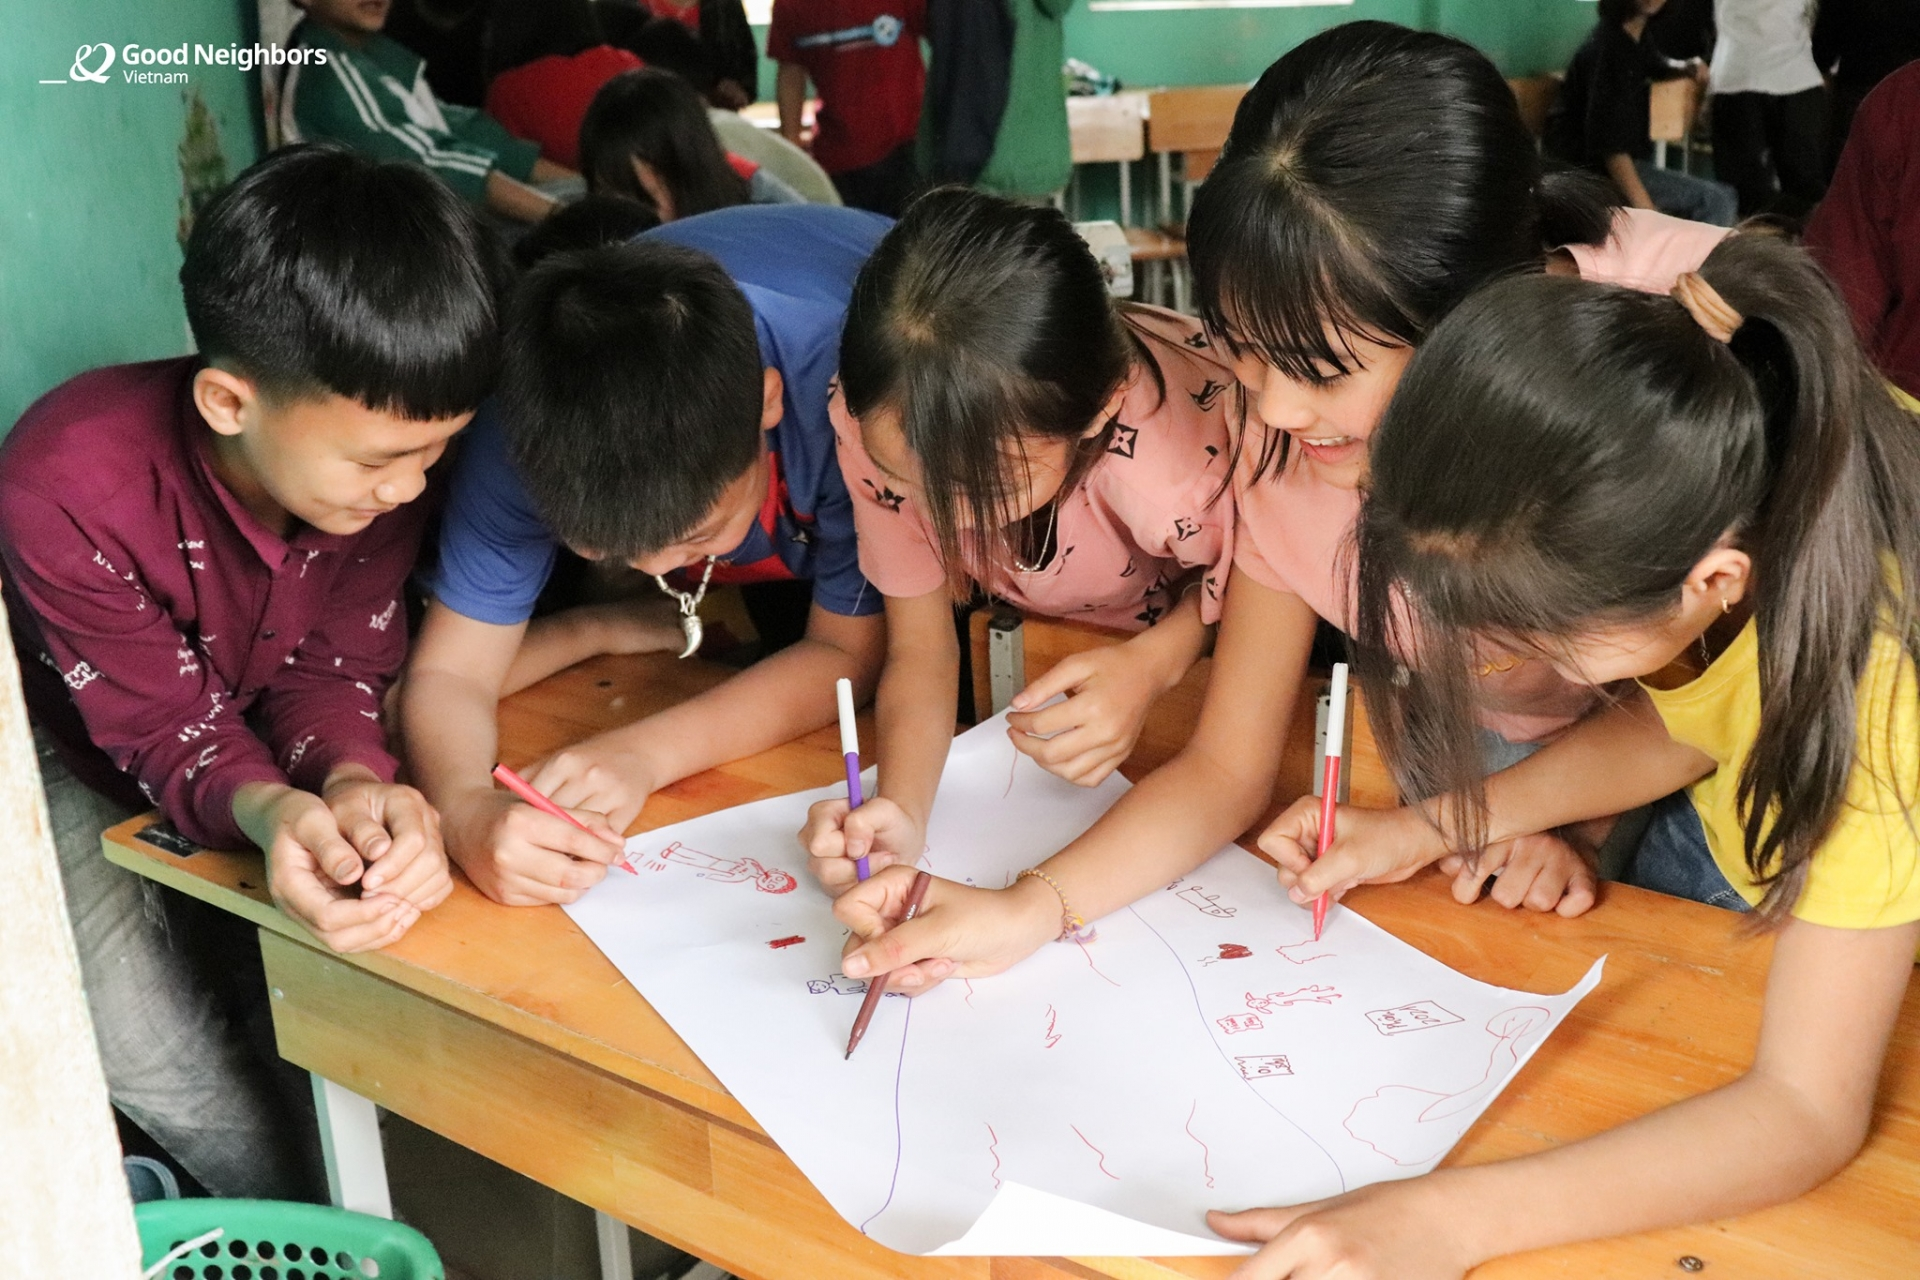 Good Neighbors organizes training classes on environment protection for children in Hoa Binh